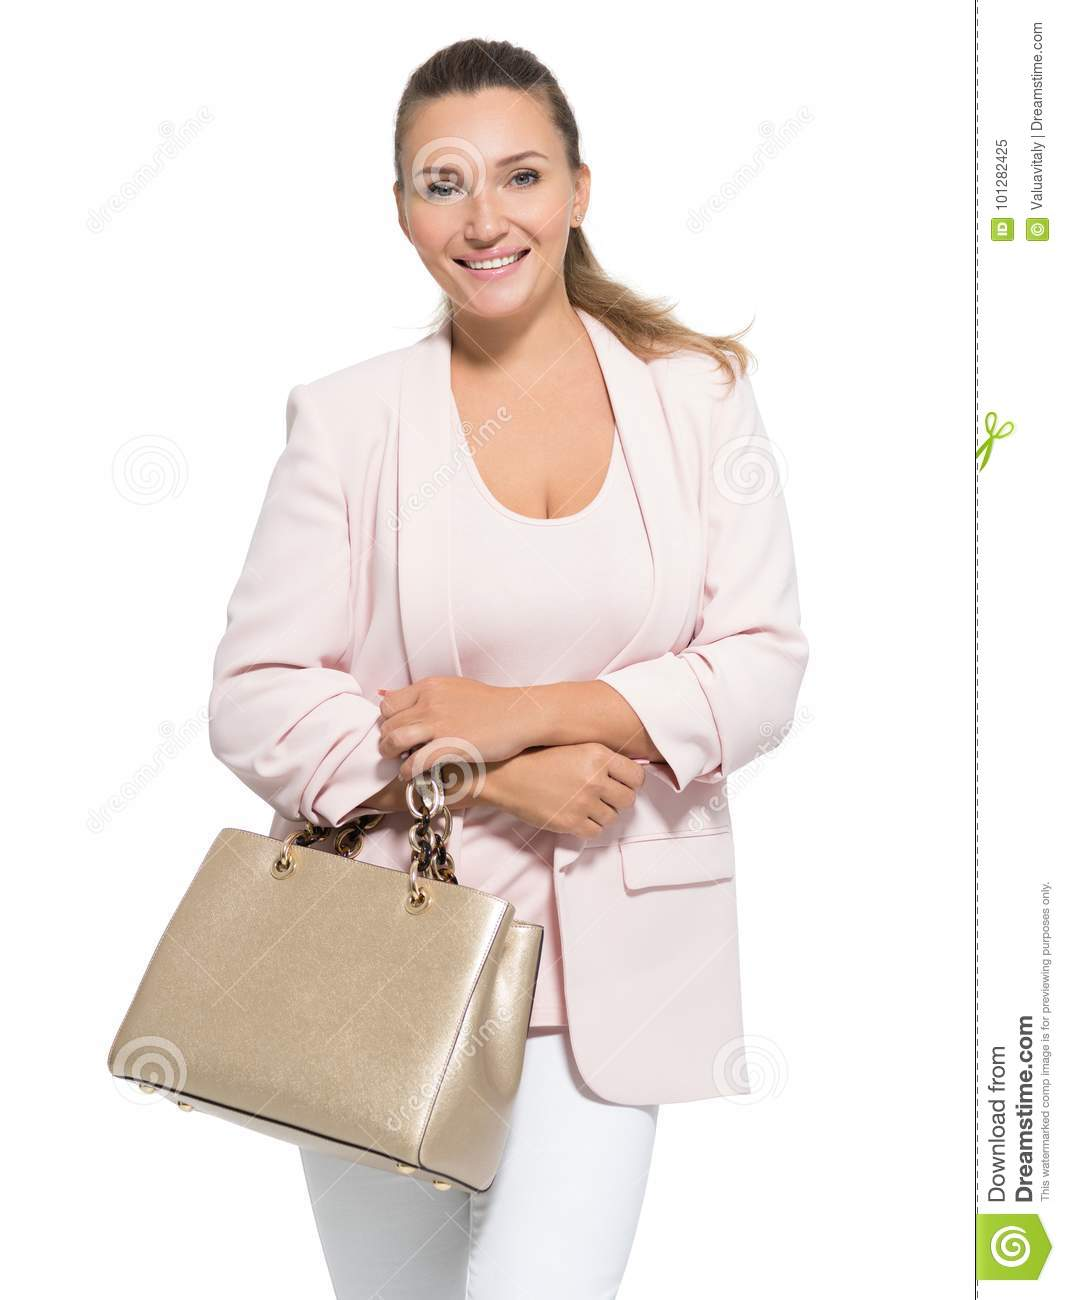 Portrait of an adult smiling woman with handbag